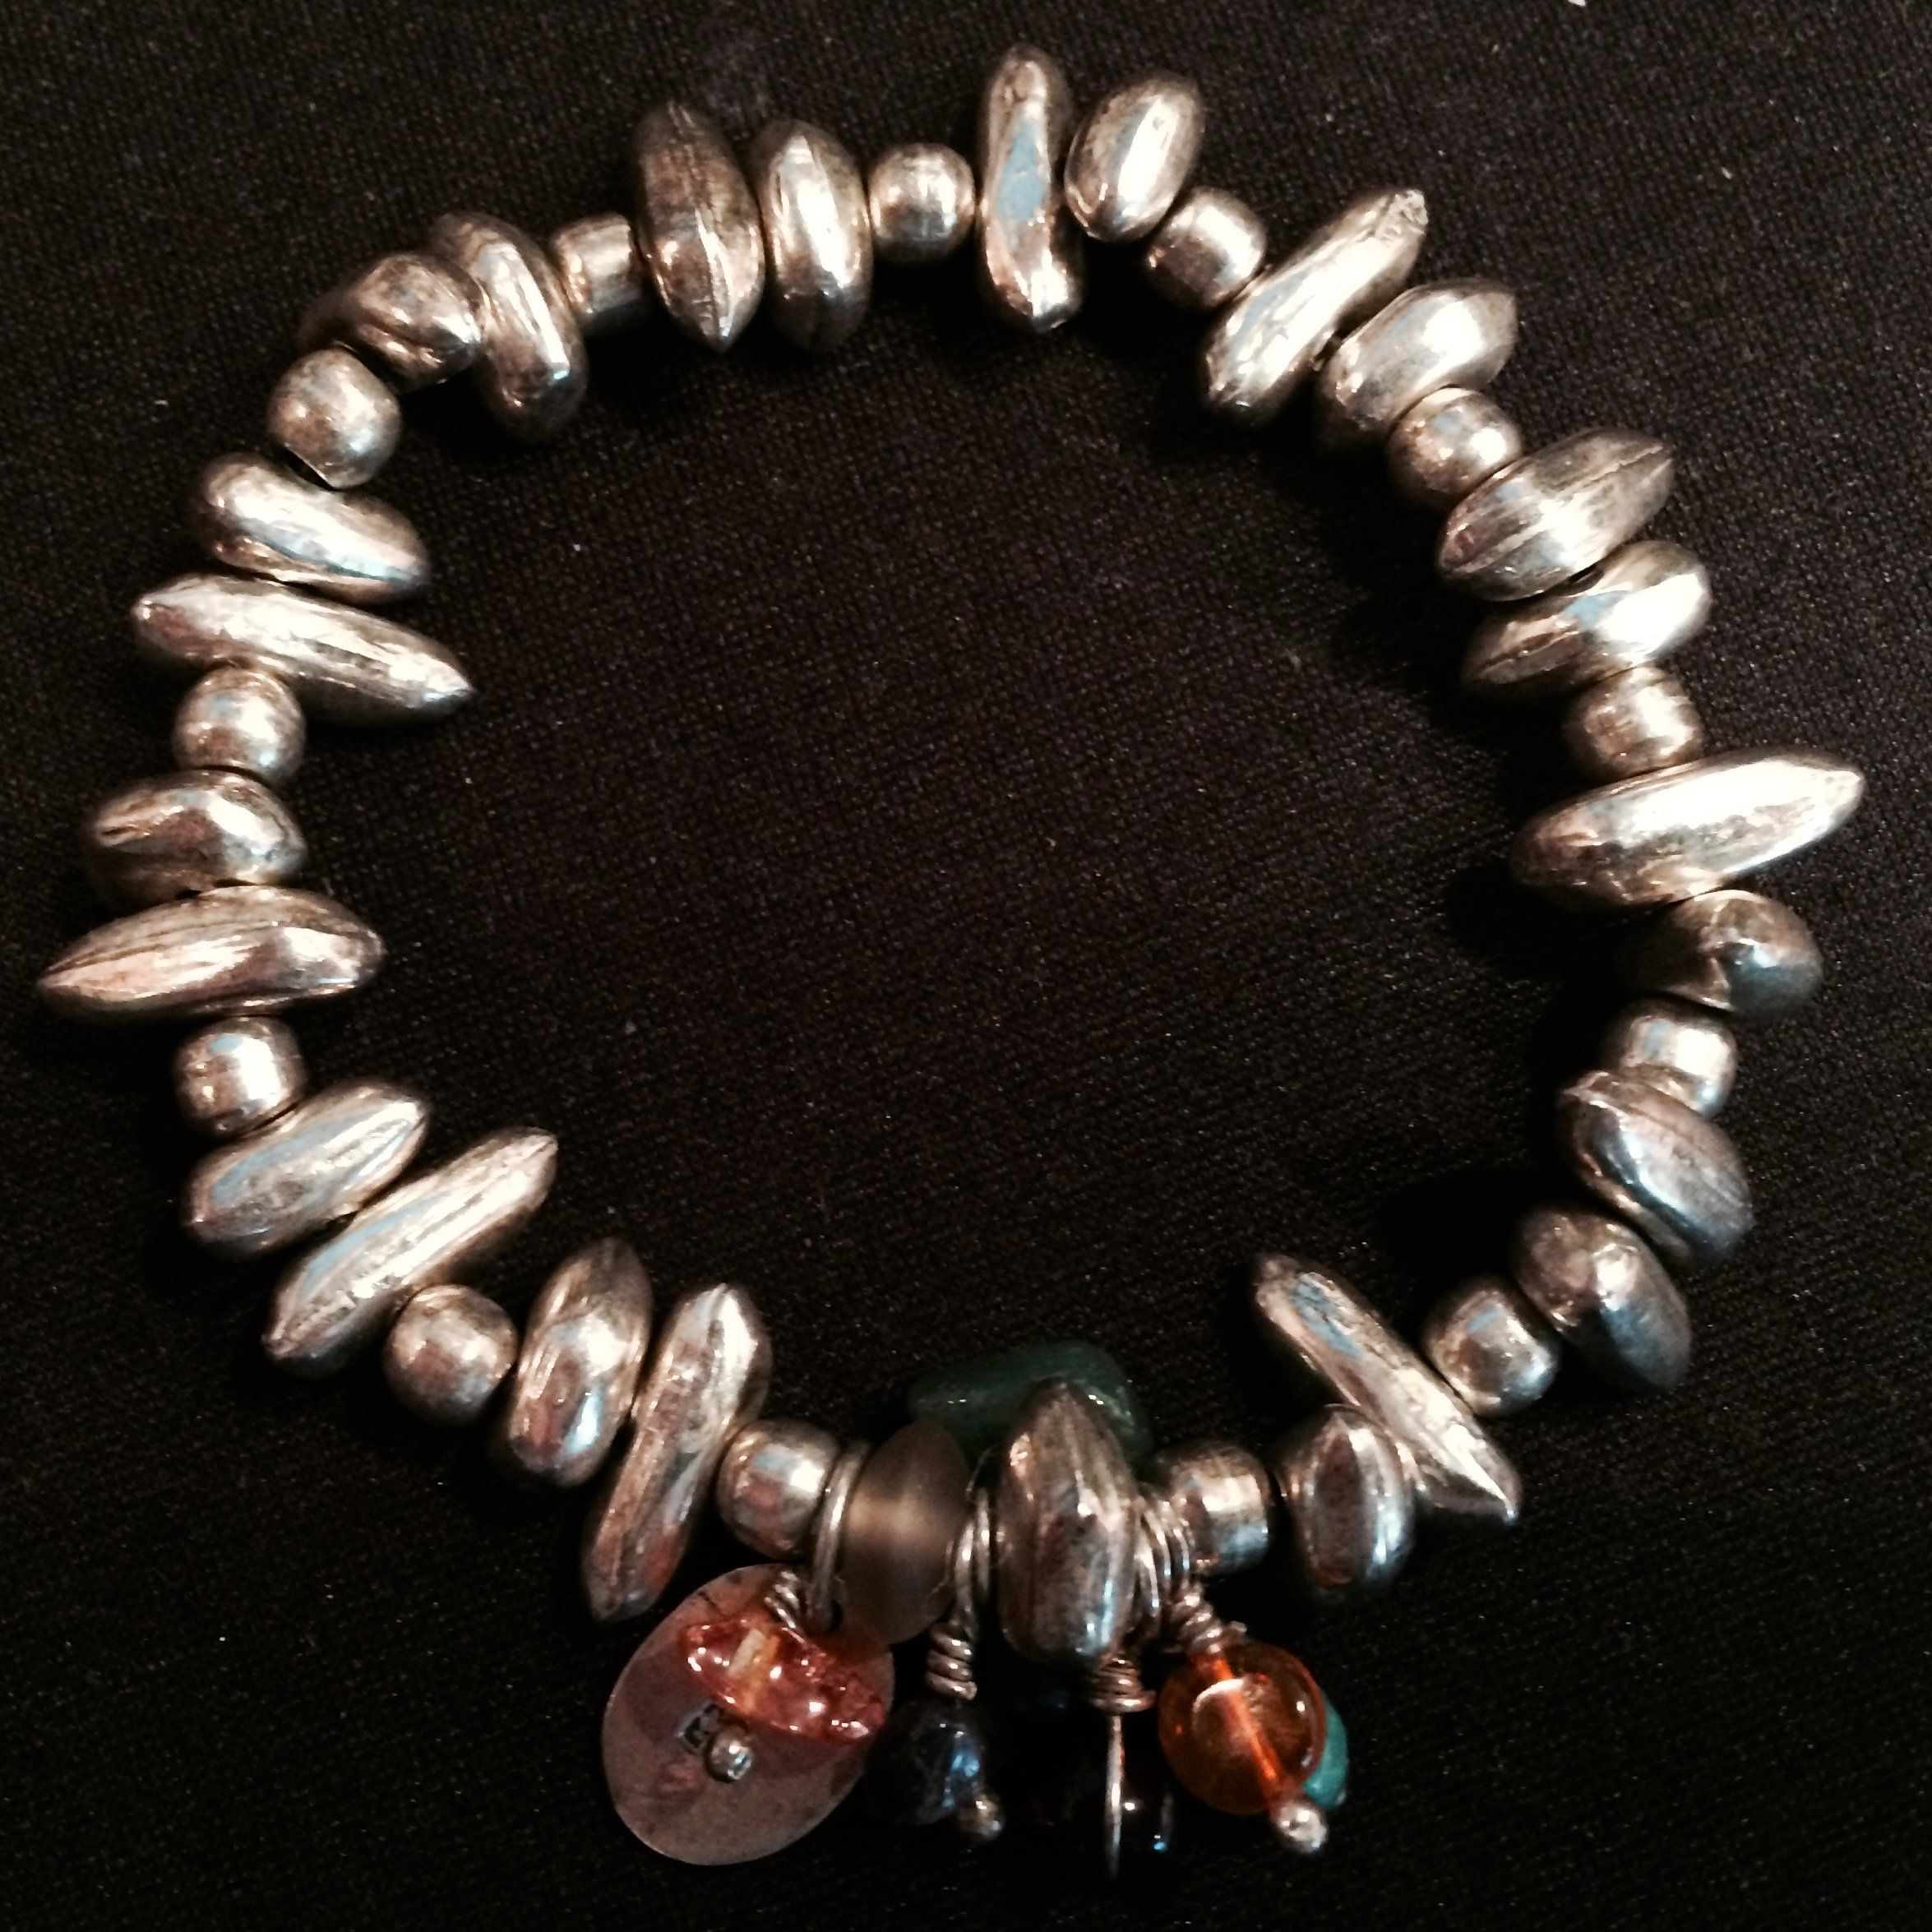 Rewards for supporting Eva Nepal make great gifts - how about a silver bead stretch bracelet? http://c-fund.us/83f